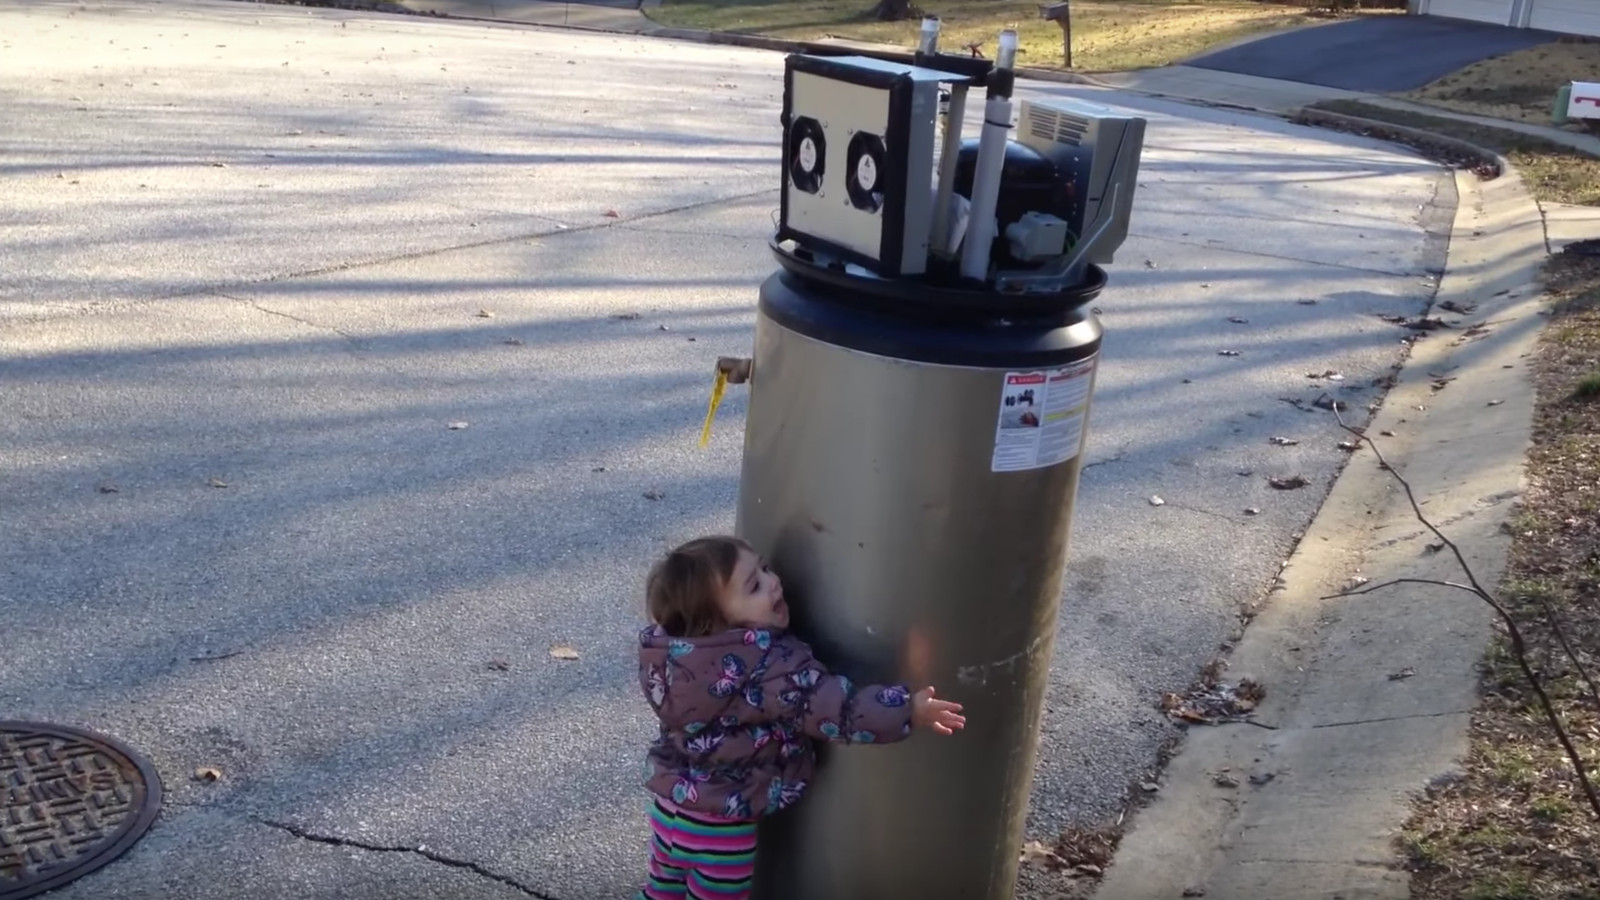 Tiny Child Mistakes Broken Water Heater for a Robot